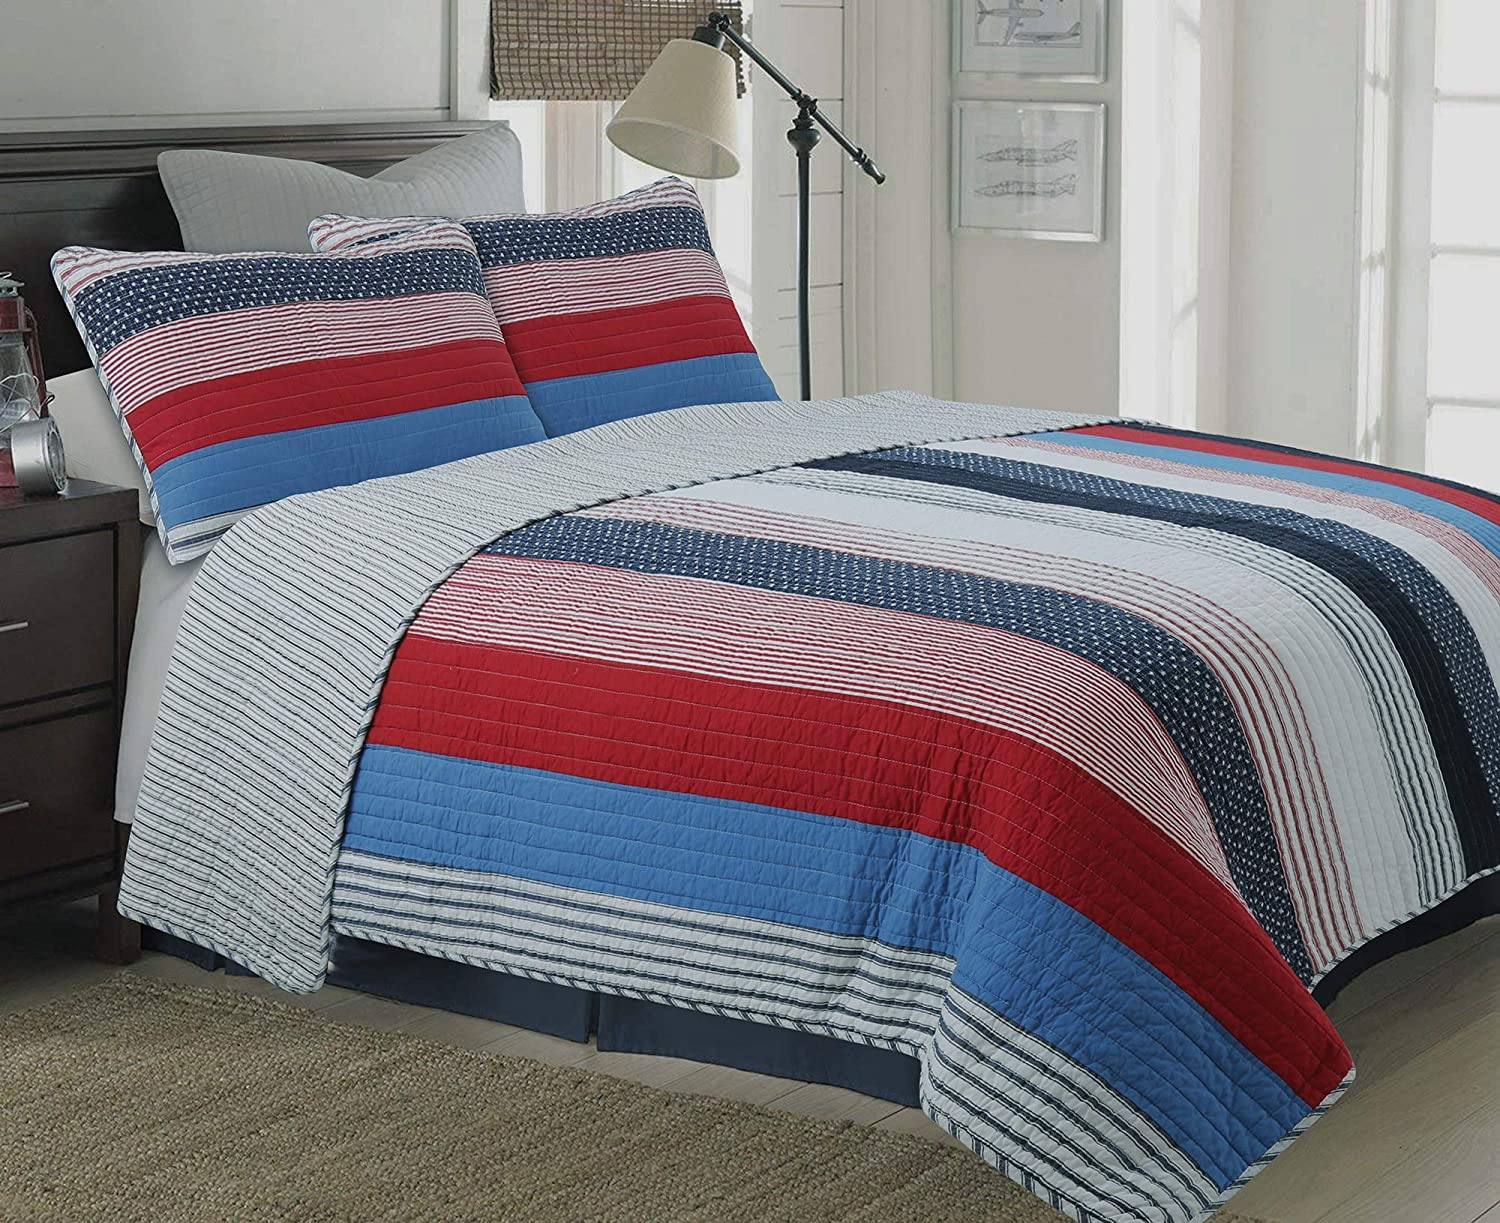 Cozy Line Home Fashions Axel Bedding Quilt Set, Navy Blue Red Striped Print  100% Cotton Reversible Coverlet Bedspread, Gifts for Kids/Boy(Axel Stripe,  Twin ...